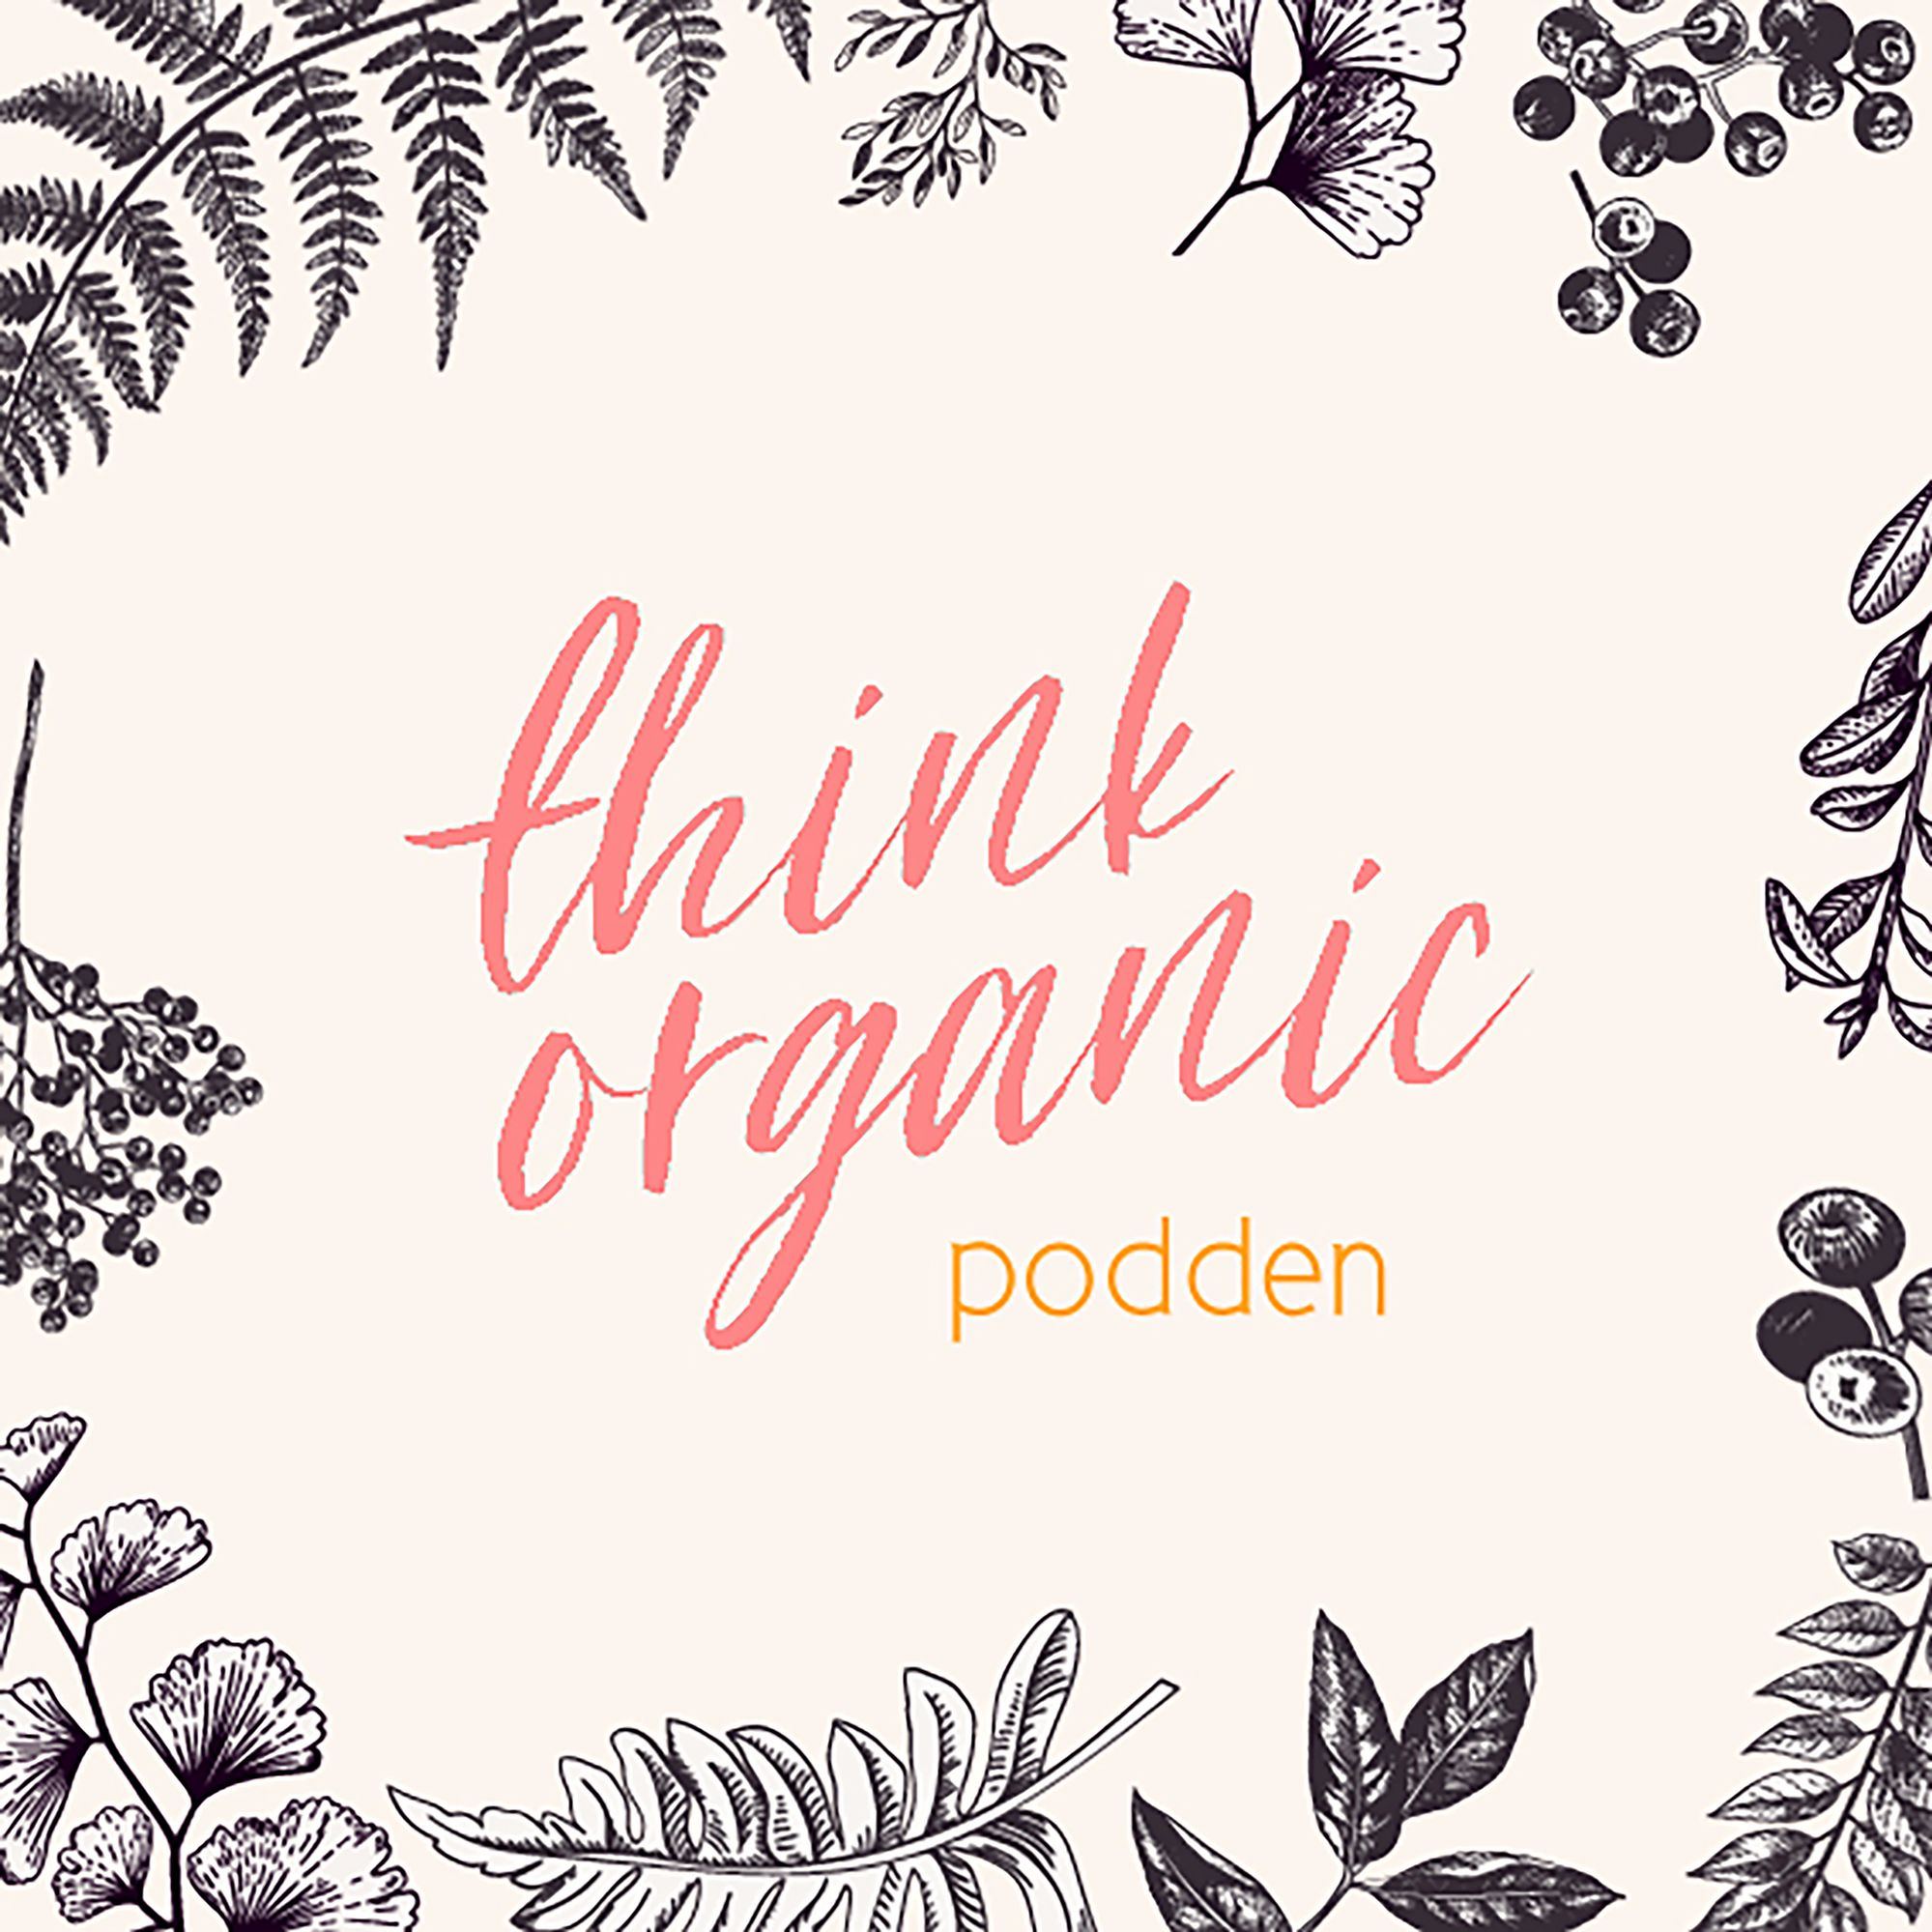 Think Organic podden